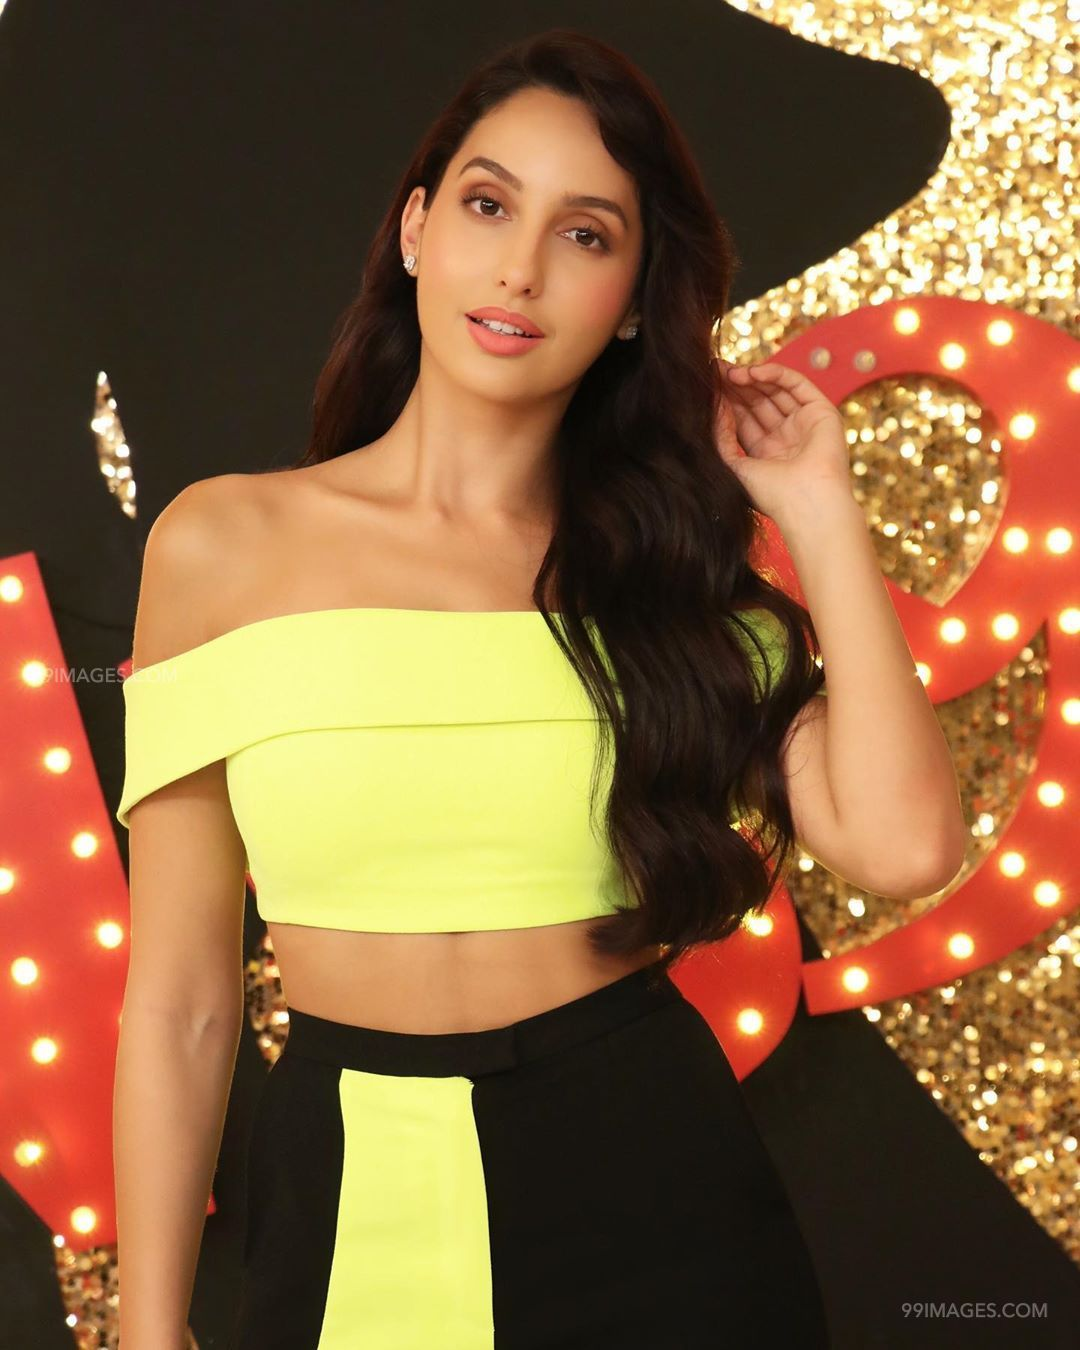 Nora Fatehi Latest Hot HD Photos & Mobile Wallpapers (1080p) (50306) - Nora Fatehi